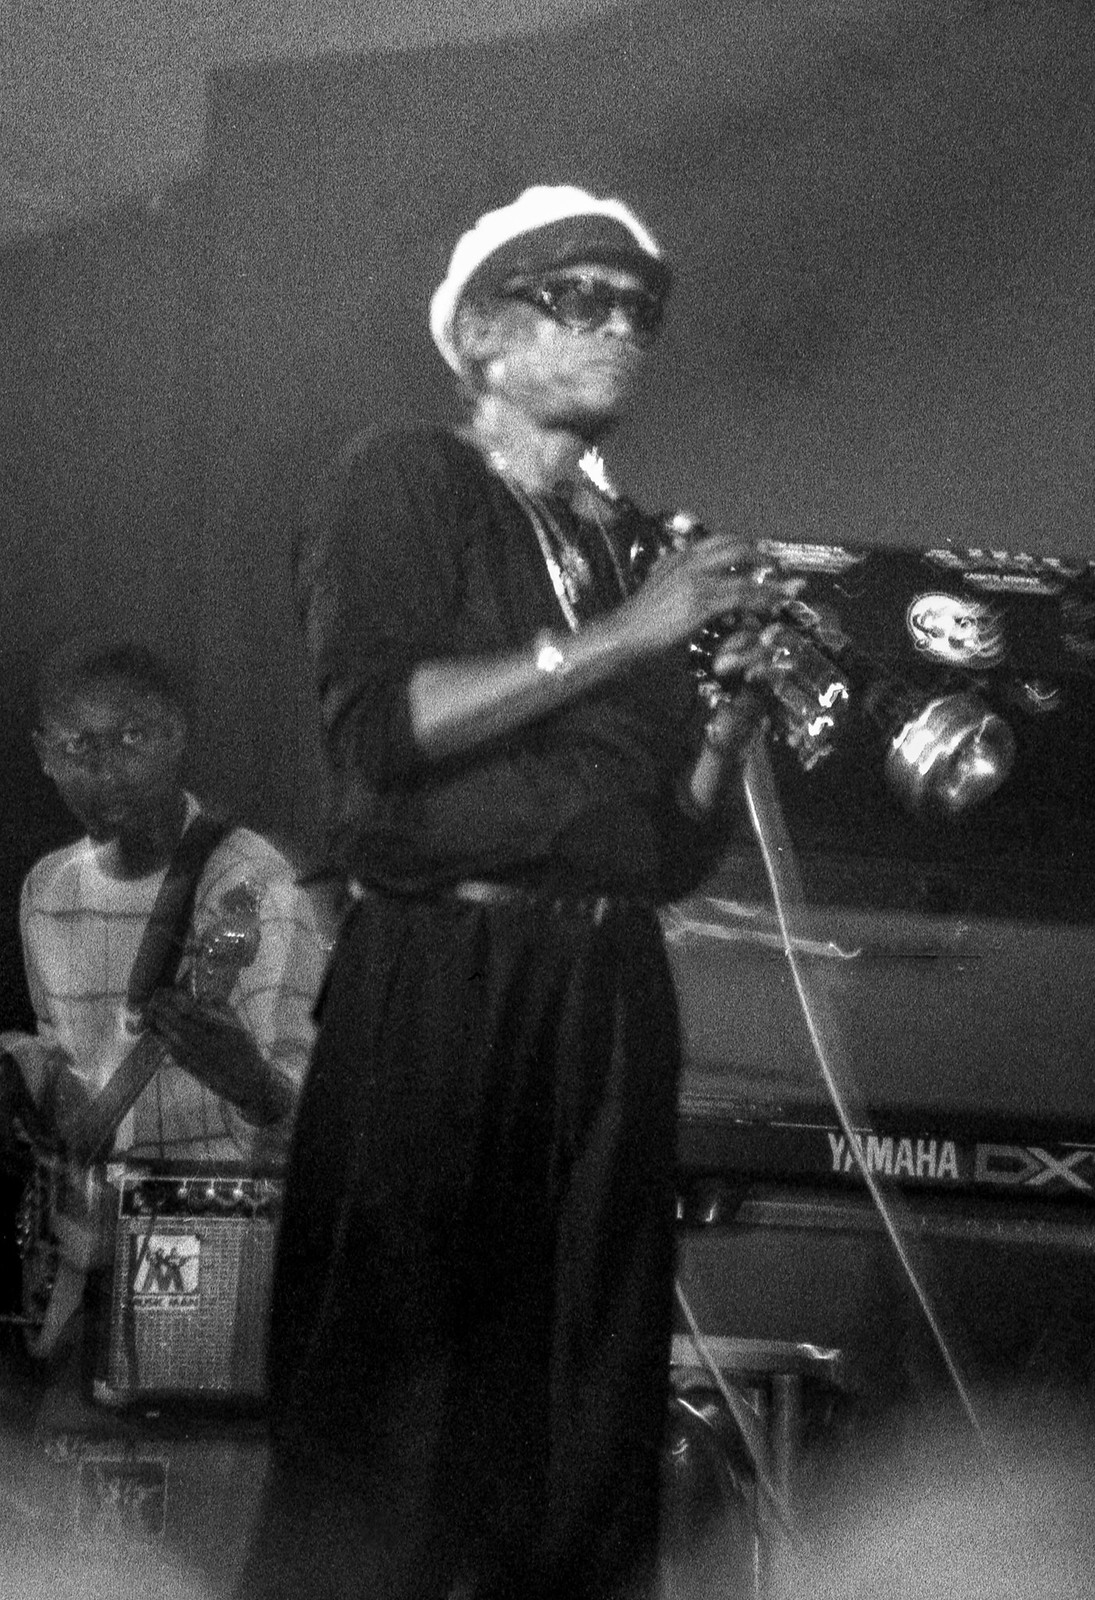 A black and white photo of Miles Davis standing on a stage holding a trumpet with Darryl Jones behind him holding a guitar